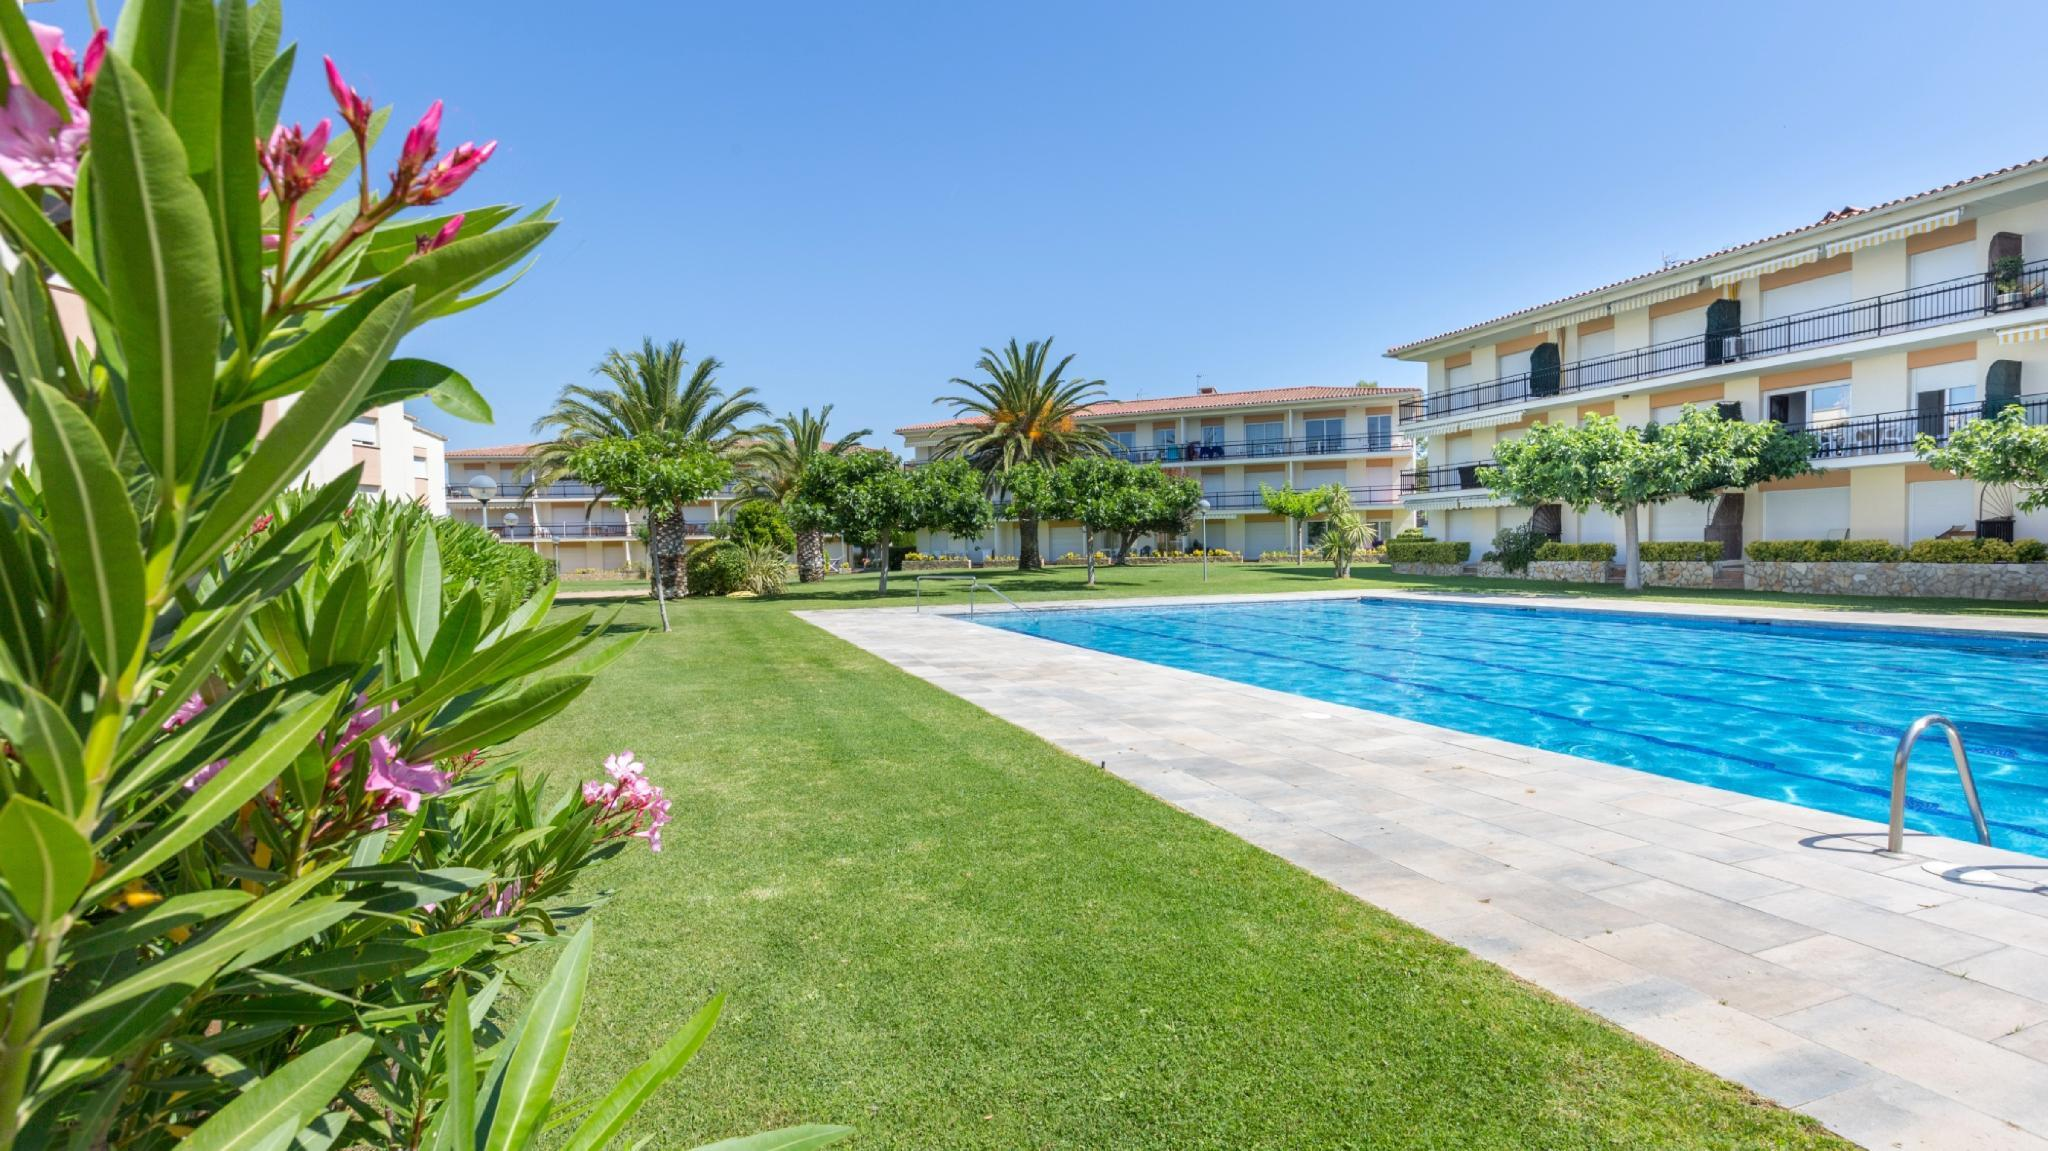 107975   Apartment In Palafrugell